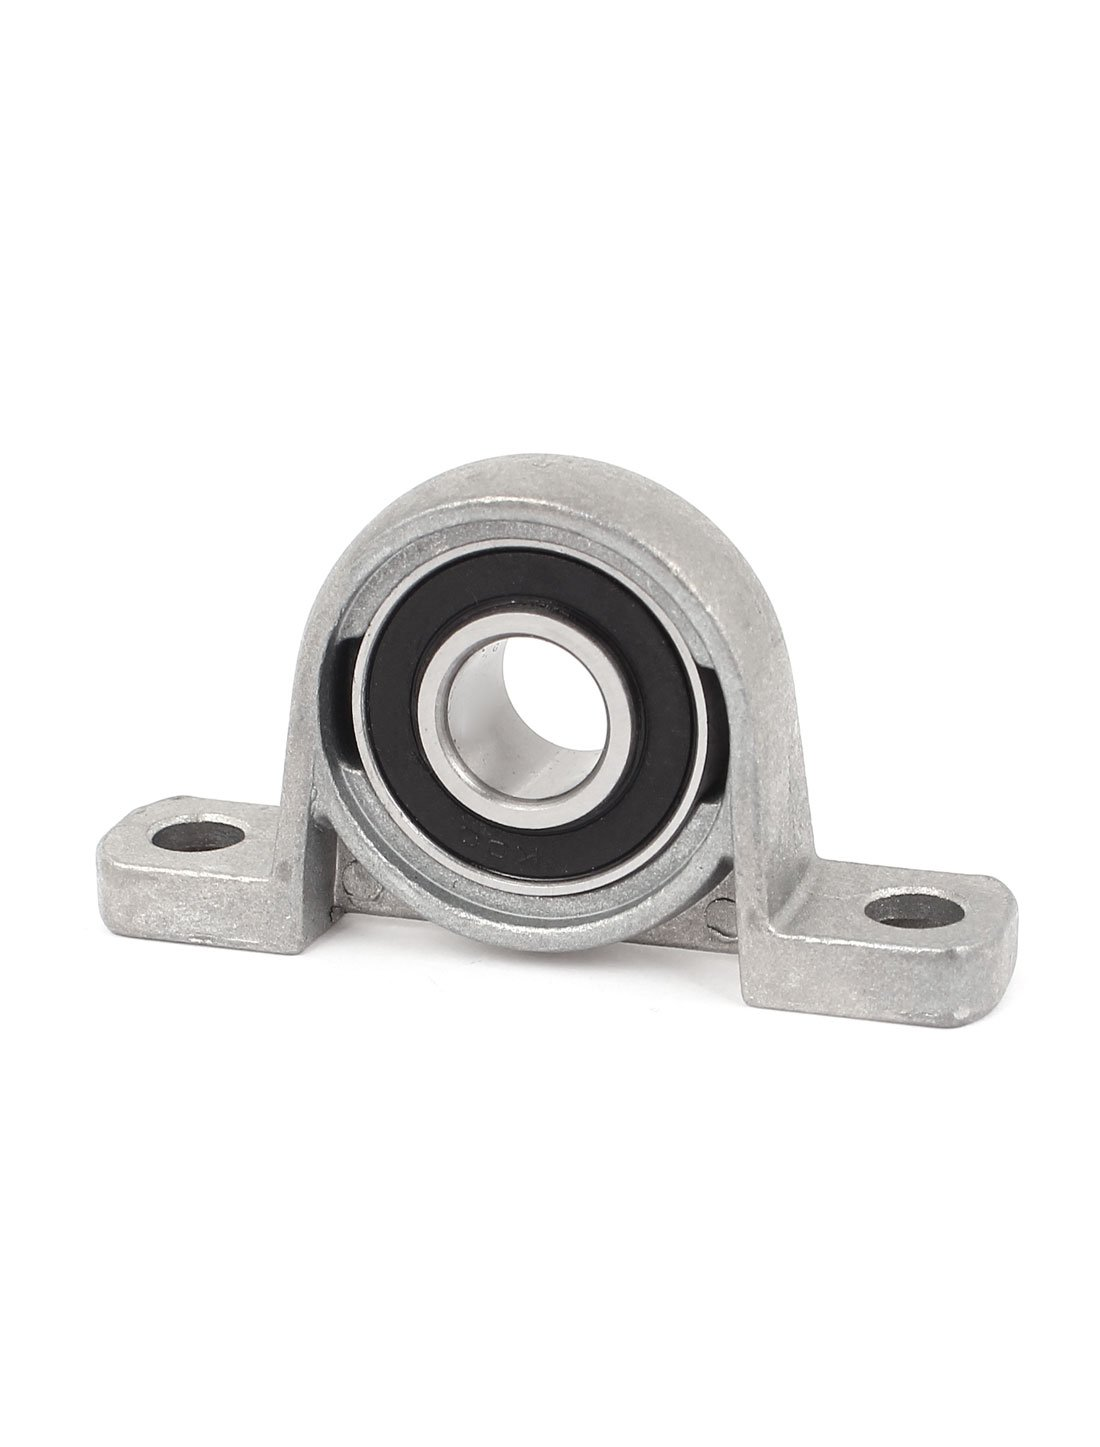 Metal Uxcell a15011600ux0133 Kp001 Self Align 12mm Bore Dia Ball Bearing Pillow Block Insert